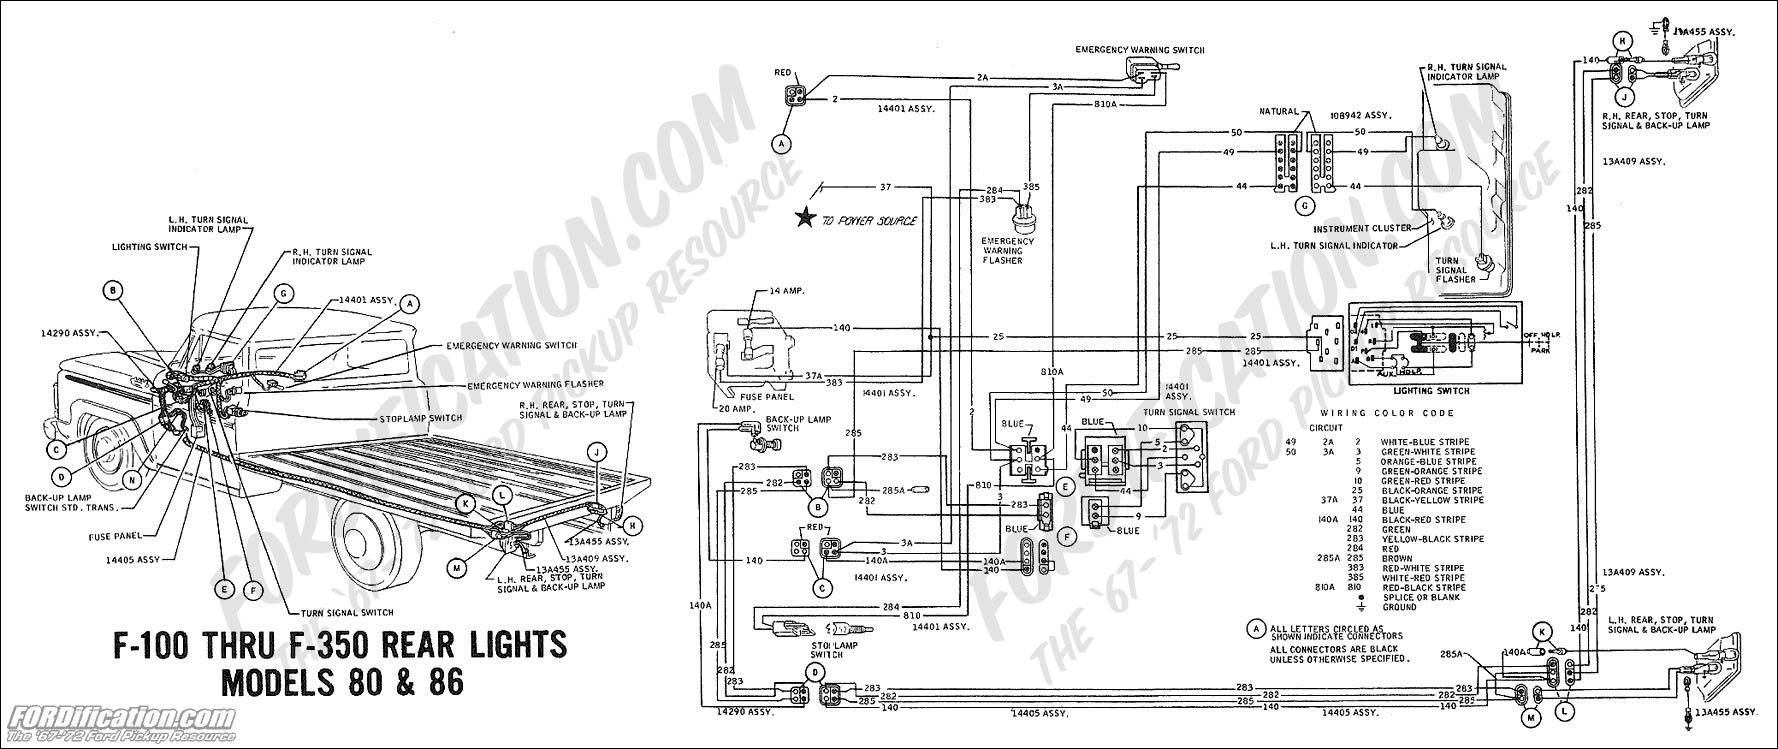 1041039 Throttle Solenoid additionally Ford 3000 Wiring Diagram Diesel furthermore 3e3p5 1994 Ford Ranger Locate Diagram Electrical Wiring System as well 2005 Yamaha Dt125x Wiring Diagram as well Schematics h. on ford f800 wiring schematic